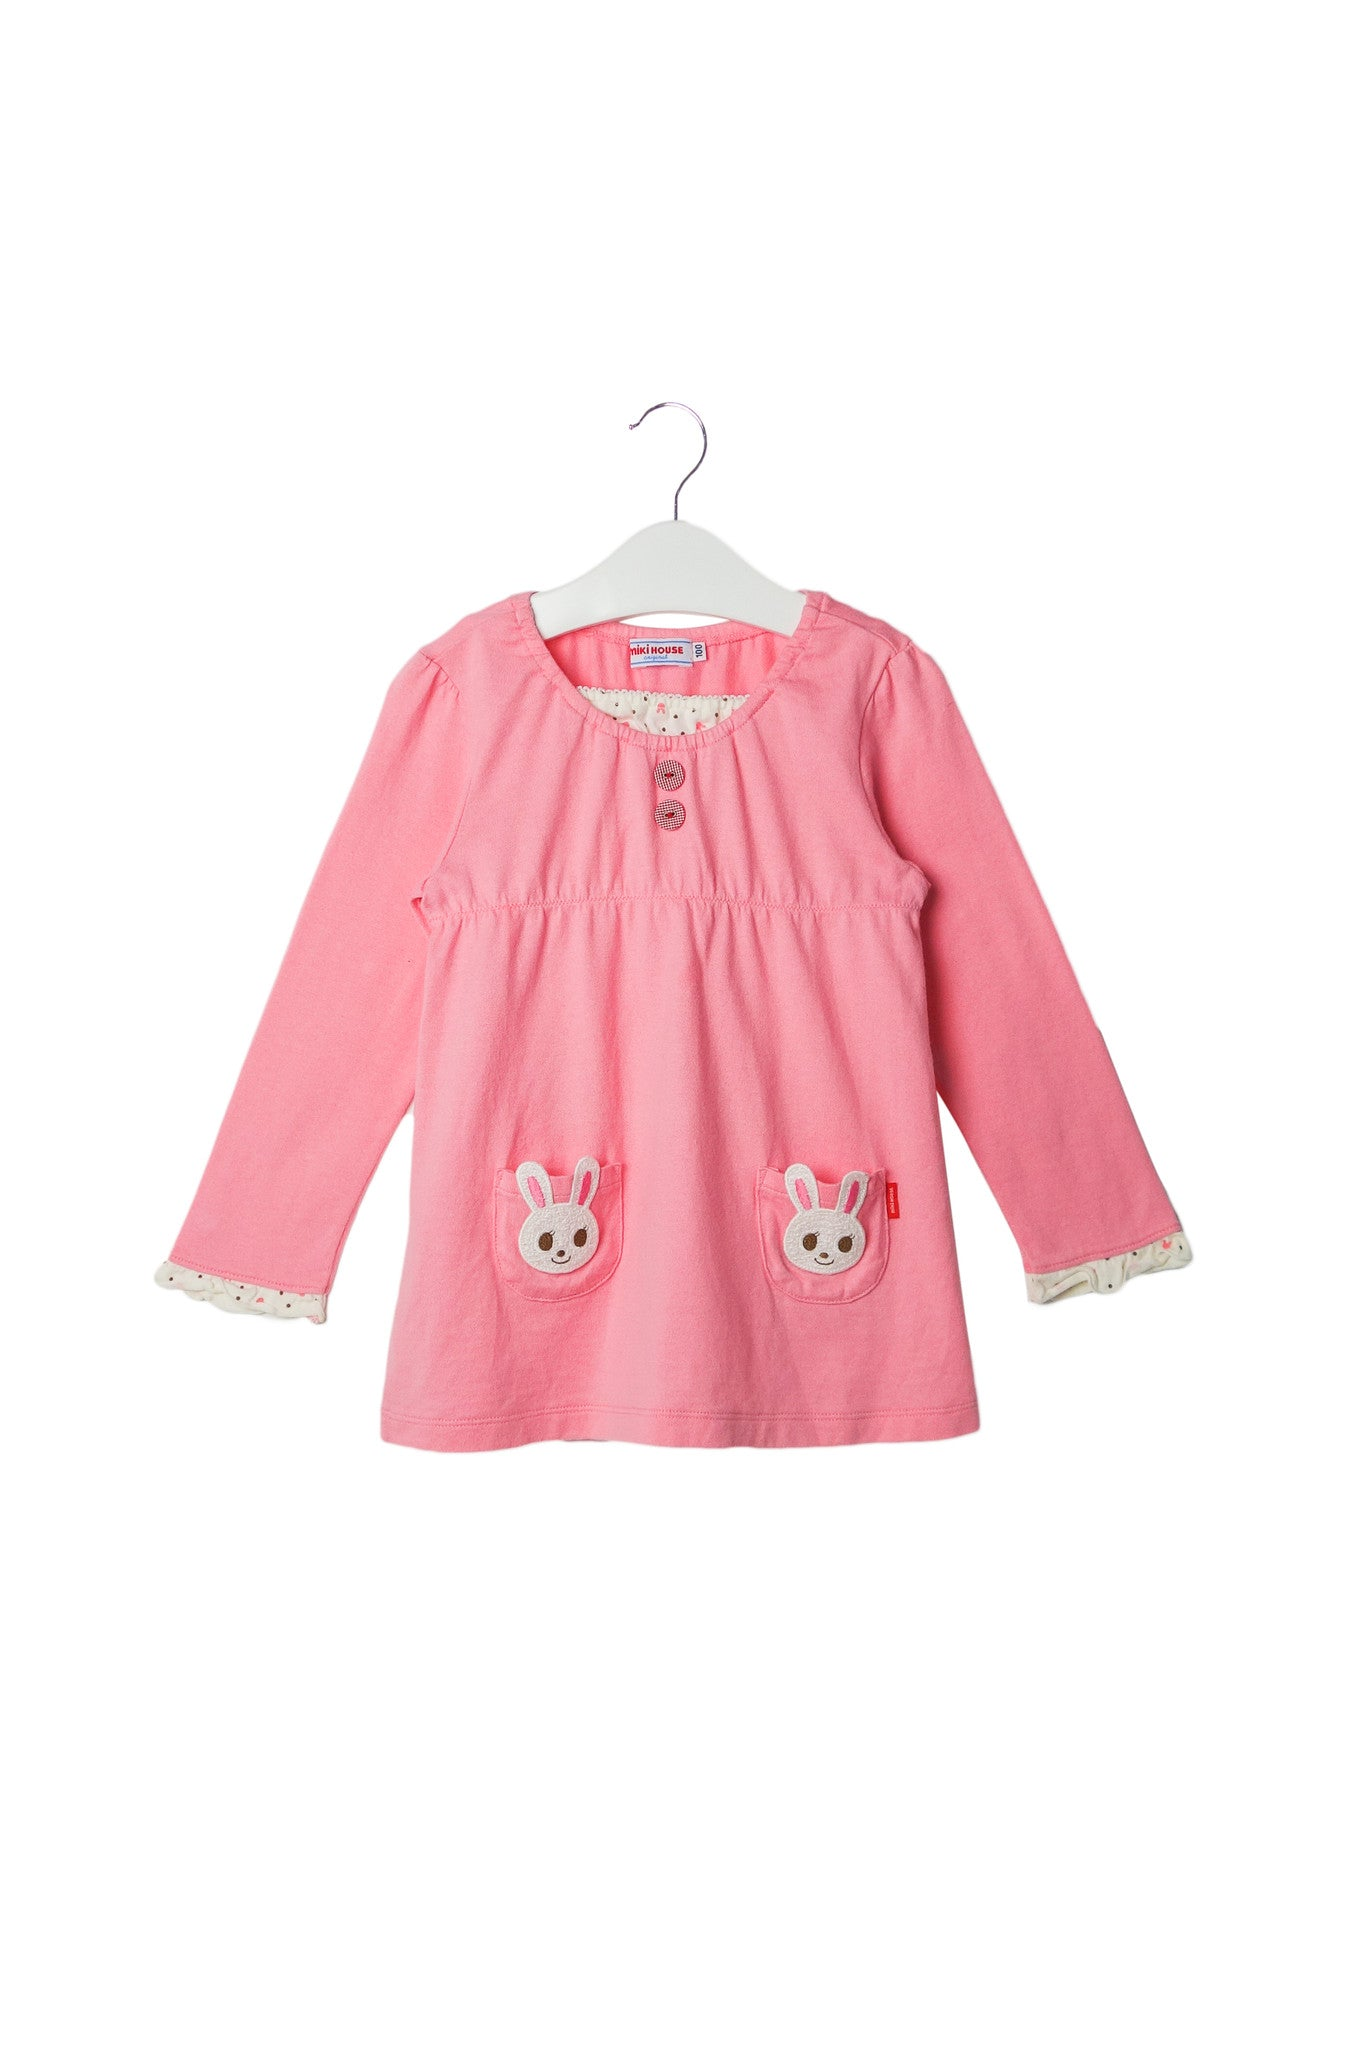 10003190 Miki House Kids~Dress 3T (100 cm) at Retykle